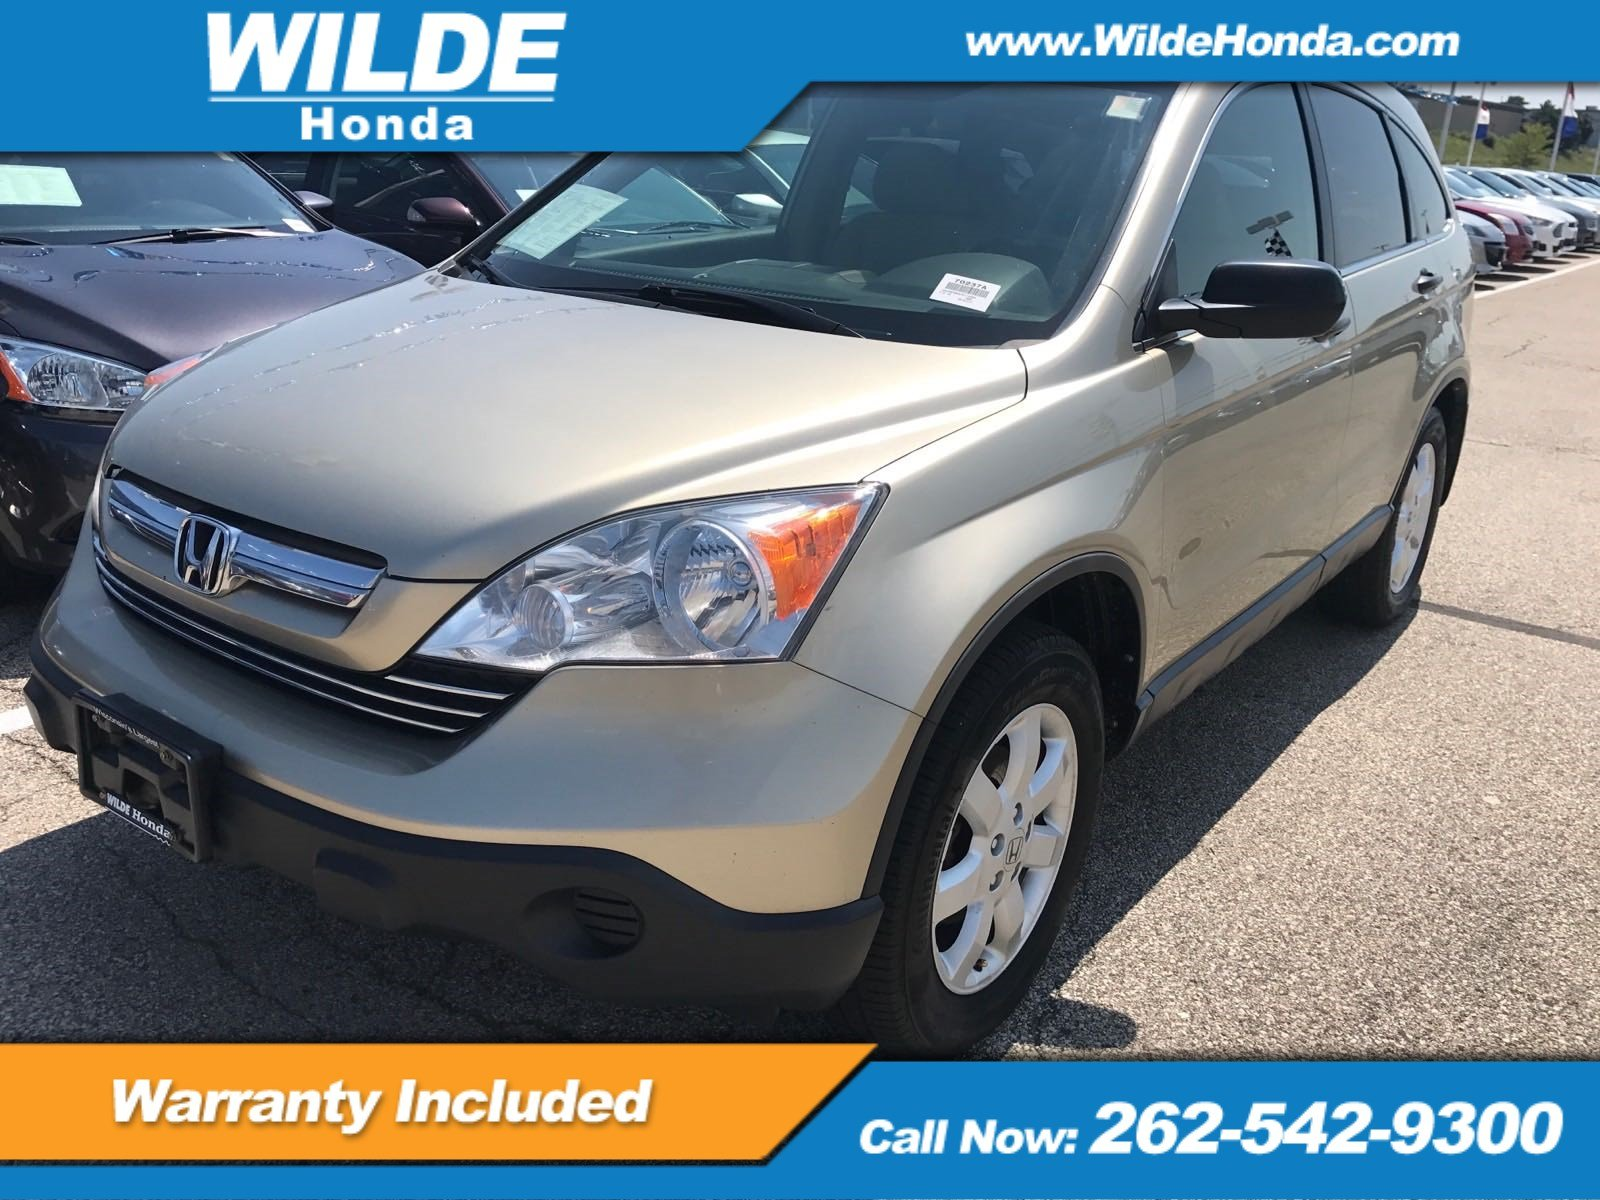 Ce54cd4f0ce0c2b2e68e5f72c767a4a2 Great Description About 2007 Honda Crv Mpg  With Awesome Gallery Cars Review